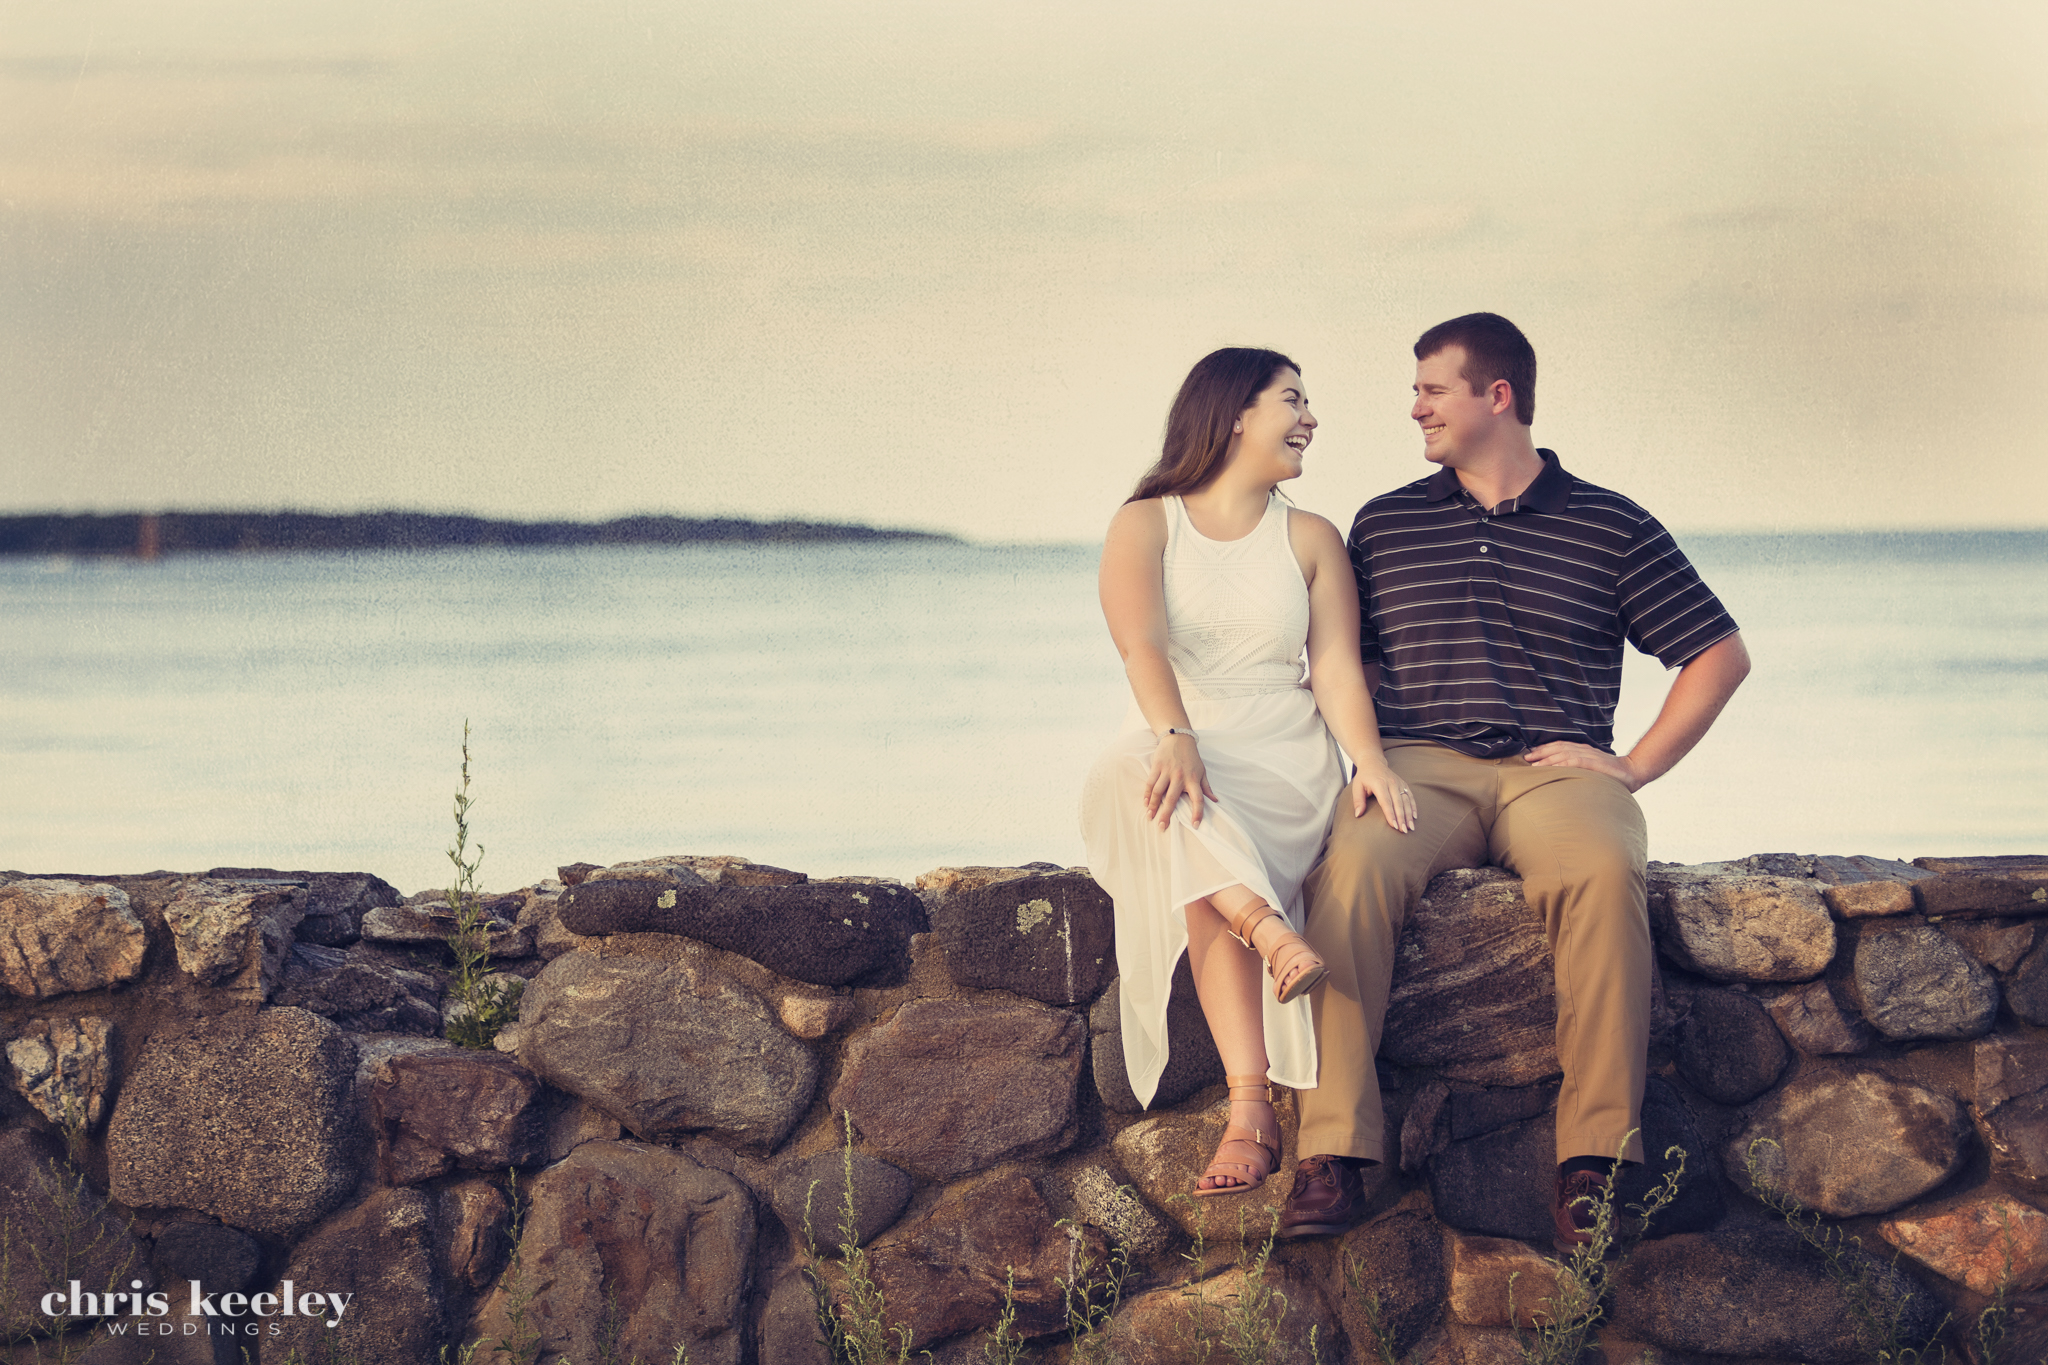 42-engagement-wedding-pictures-rye-new-hampshire-chris-keeley-weddings.jpg